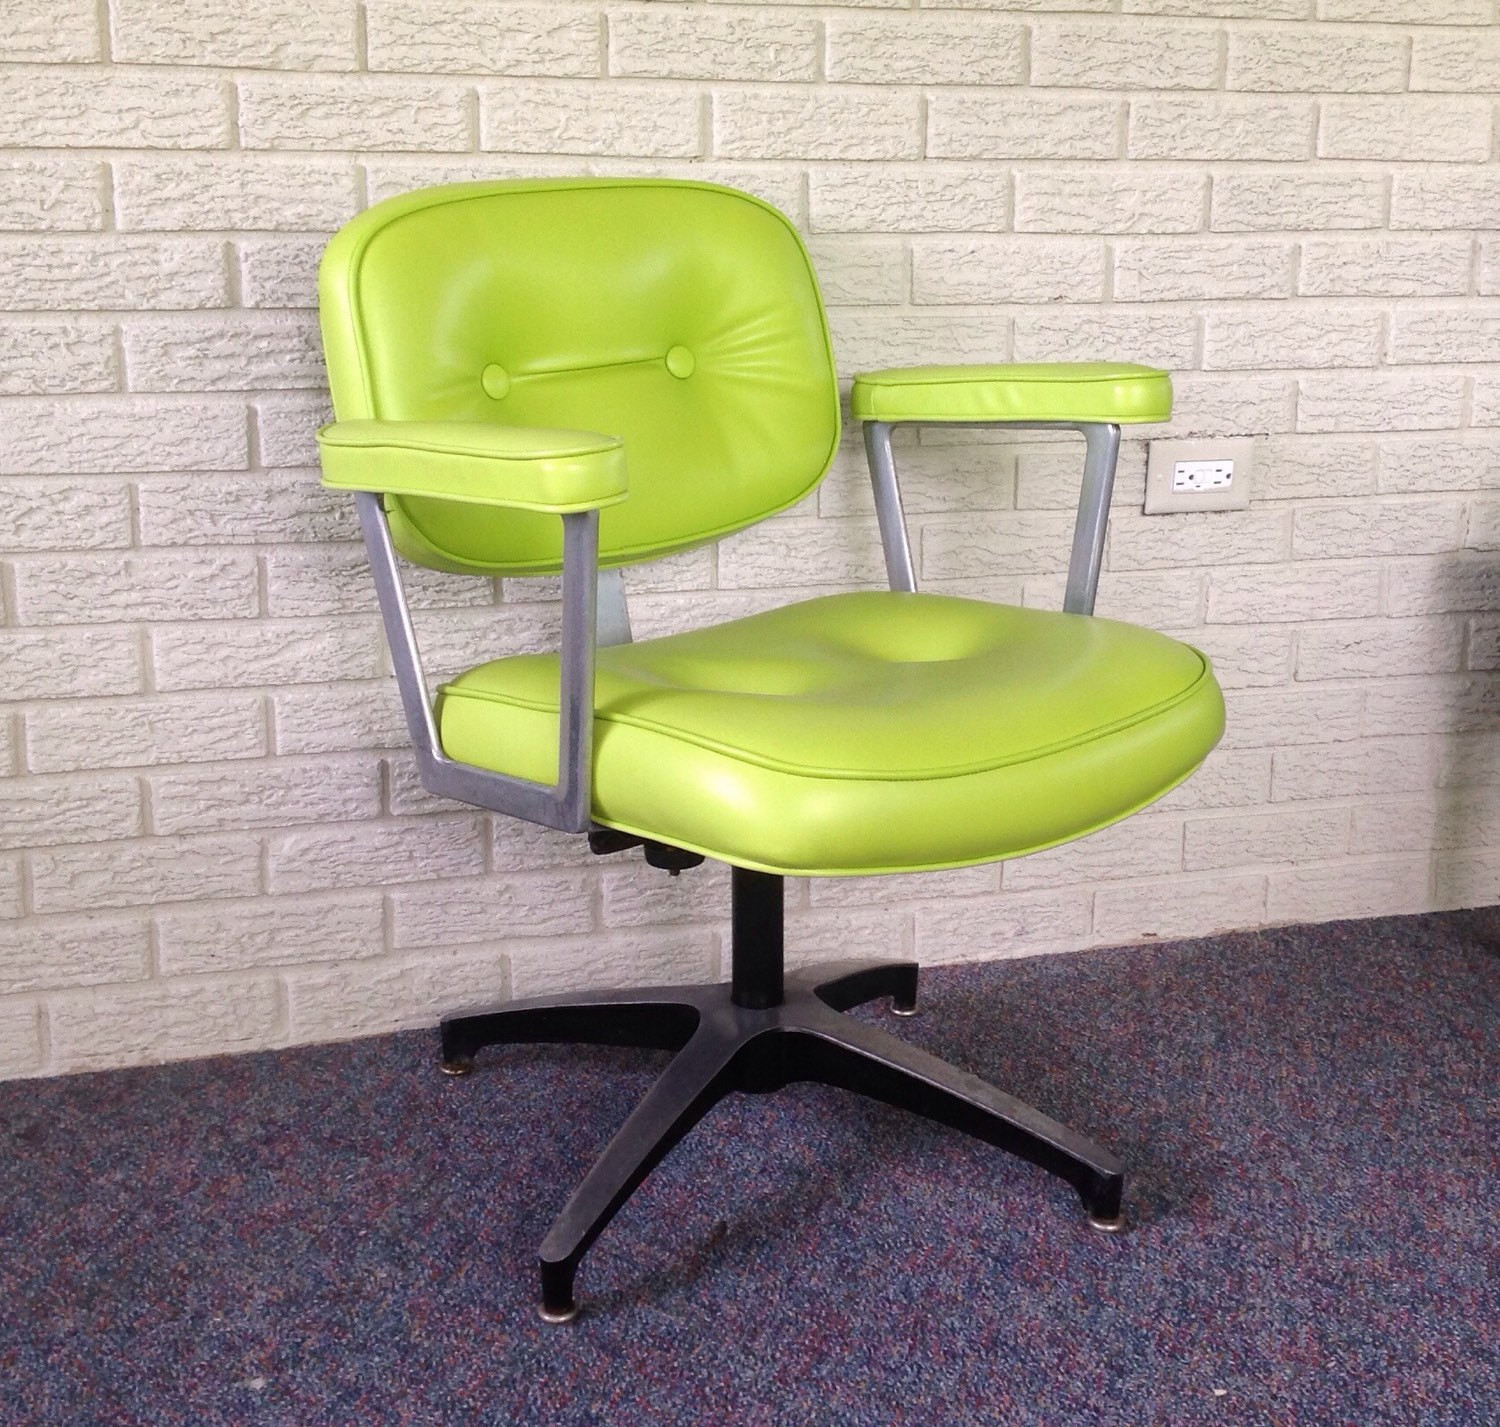 Best ideas about Mid Century Office Chair . Save or Pin Mid century office chair aluminum office chair vintage arm Now.